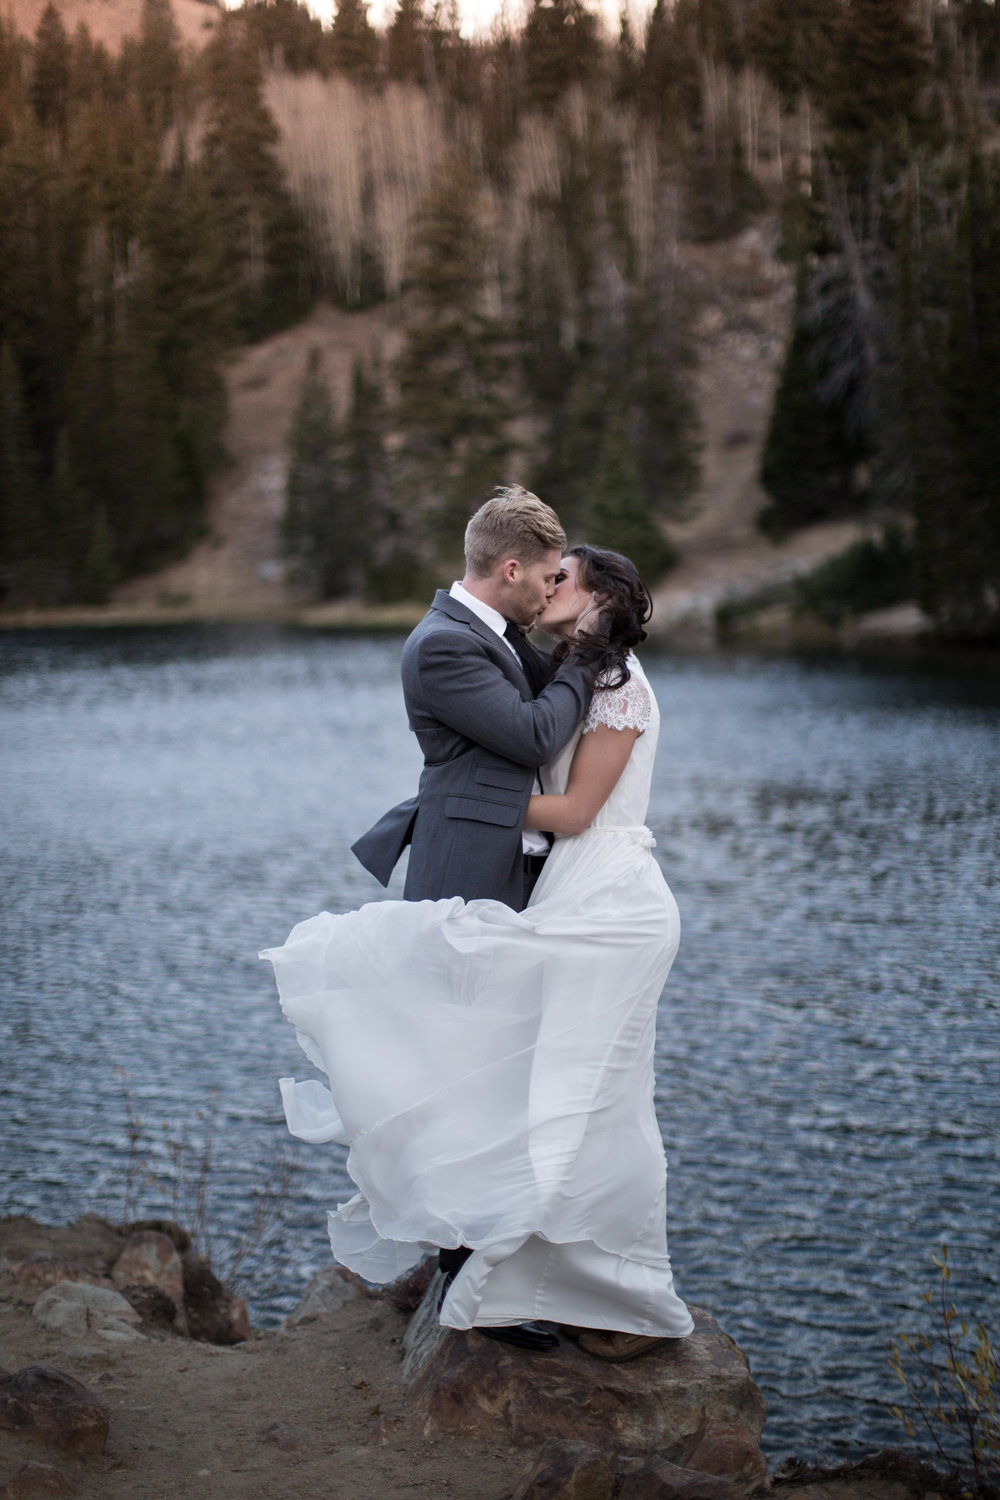 UtahValleyBrideShootTR2016 (42 of 110).jpg